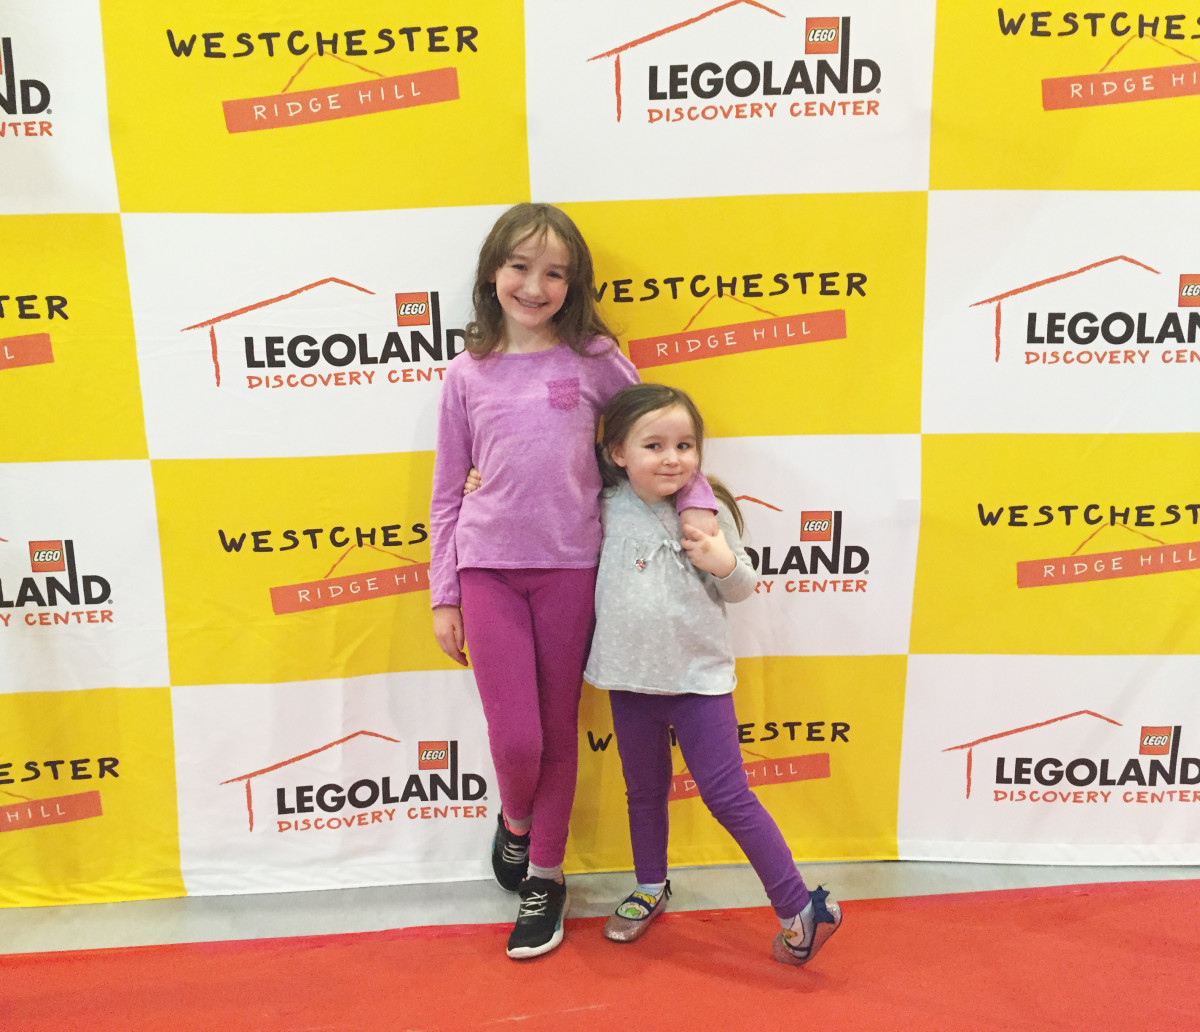 red carpet premiere at LEGOLAND Discovery Center Westchester for The LEGO Movie 4D A New Adventure